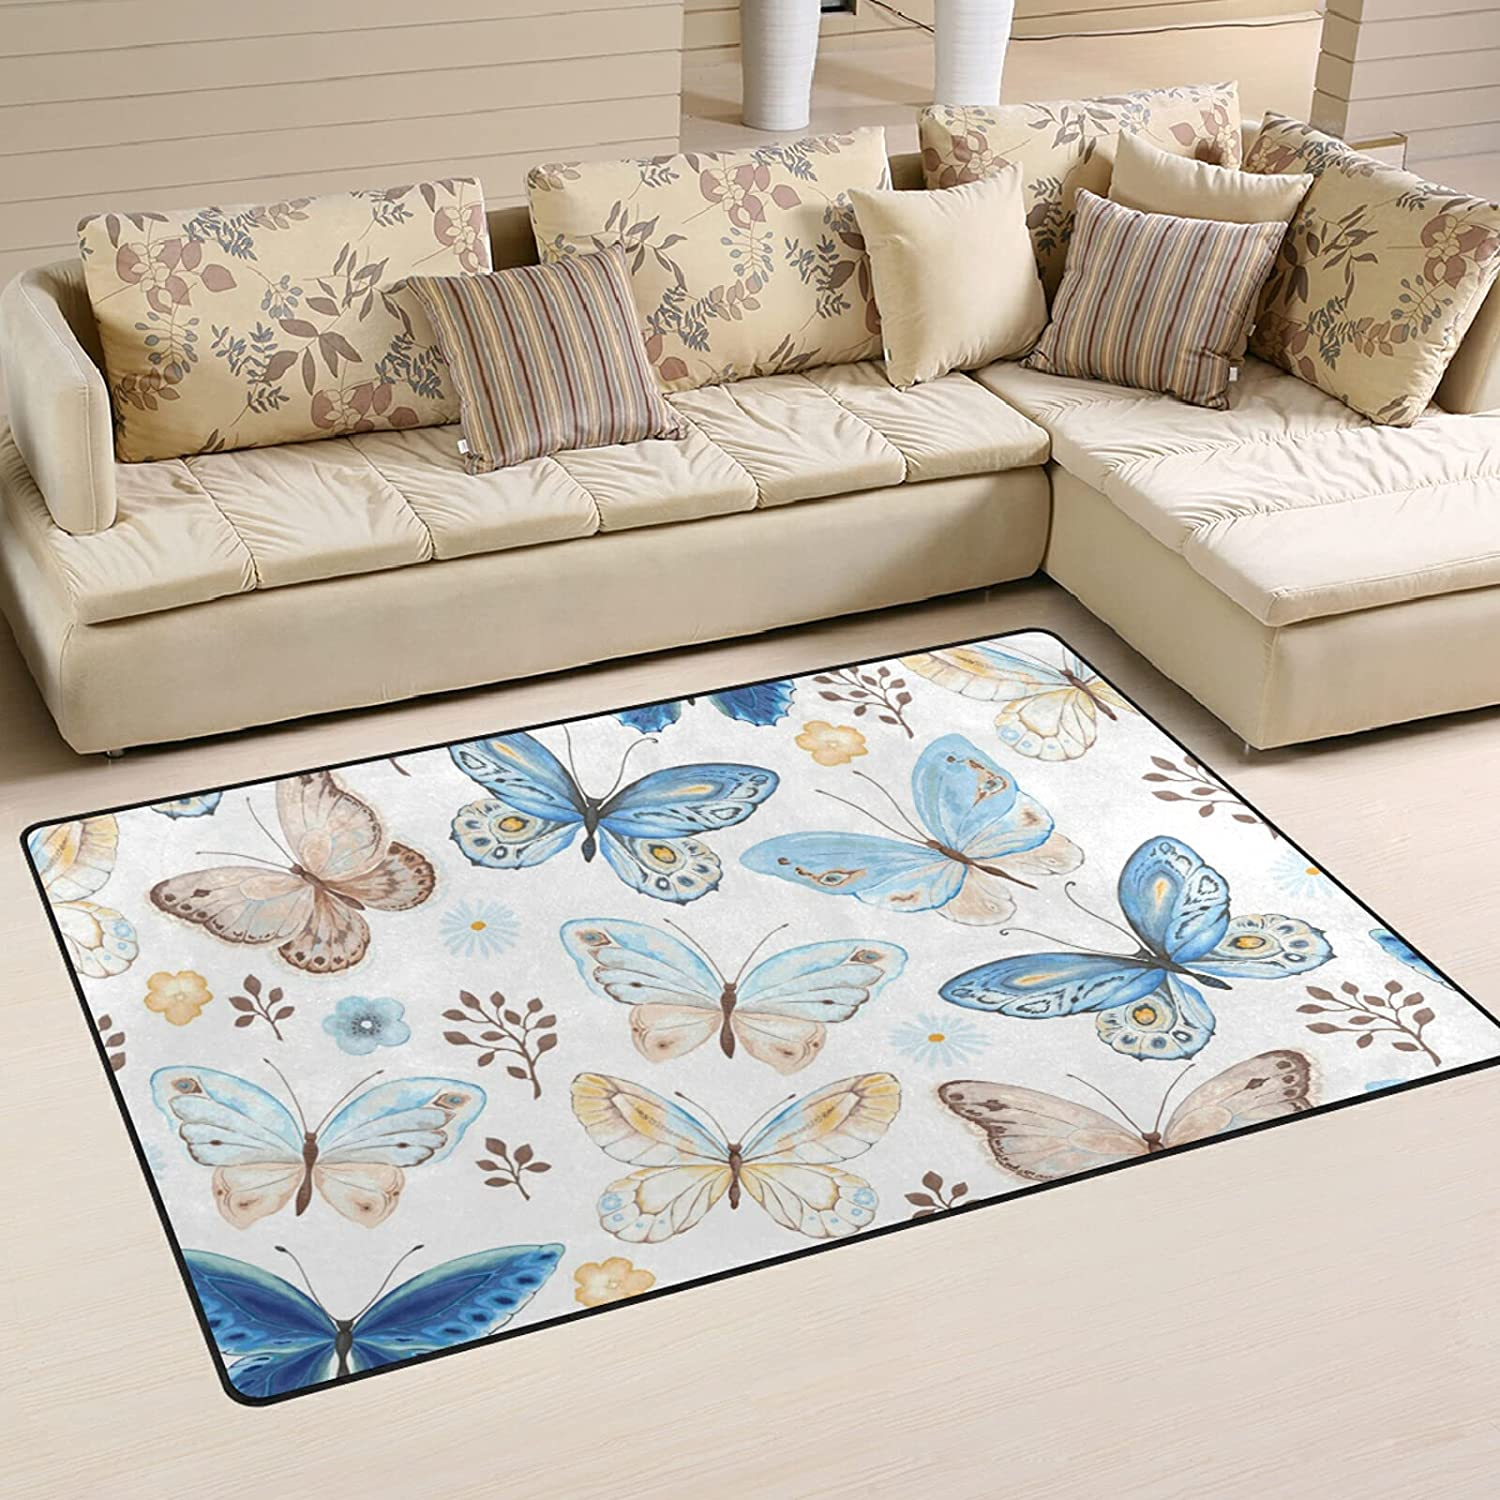 Flying Blue Butterflies Max 73% OFF Large Soft Fashionable Rugs Rug Playmat Area Nursery